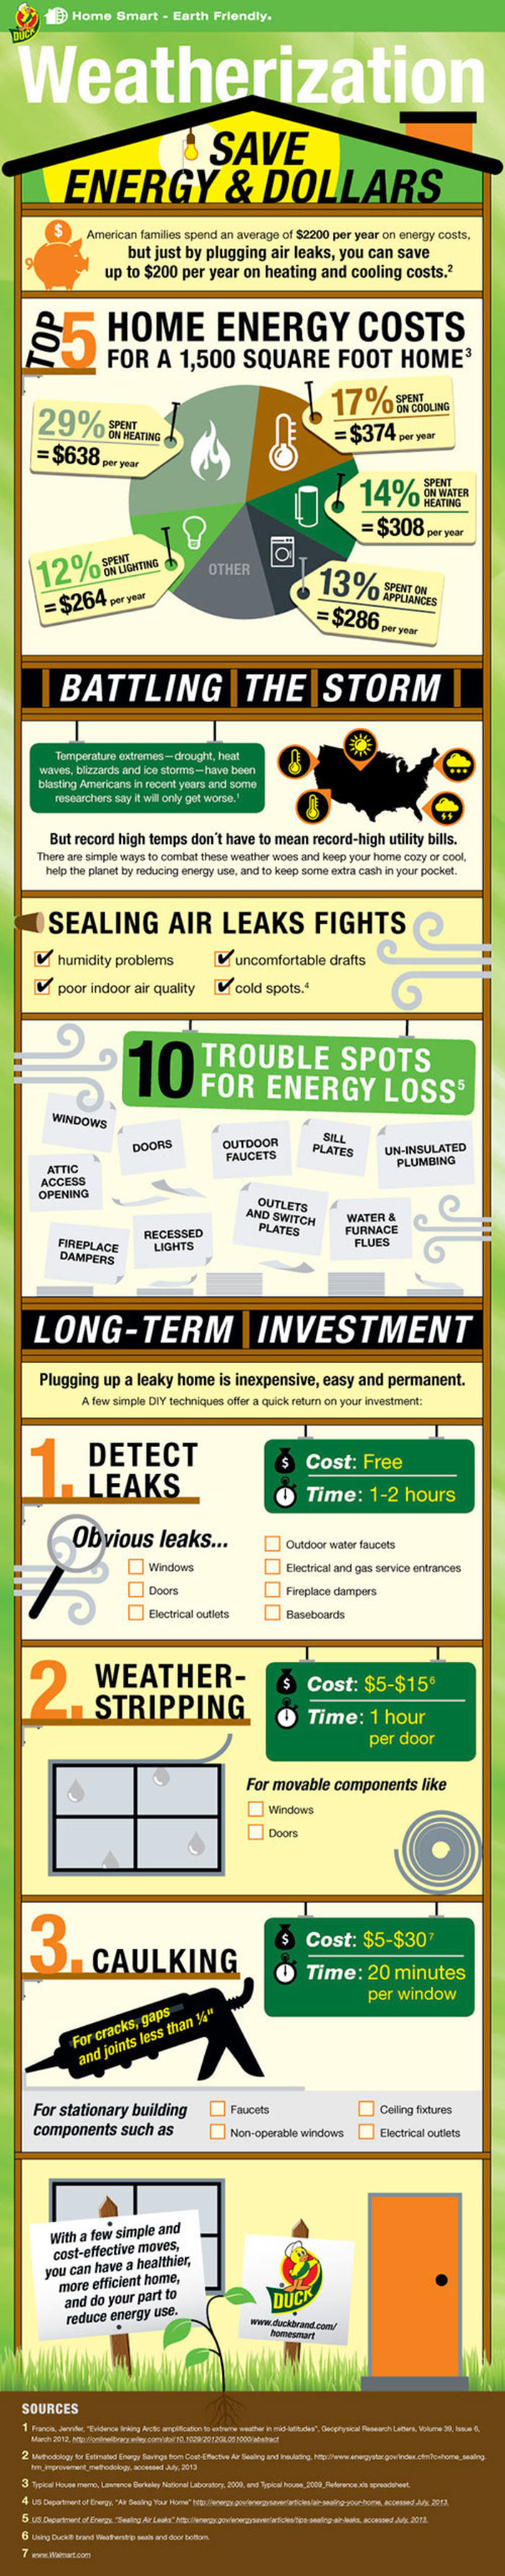 Home energy savings Infographic, see text below for content.